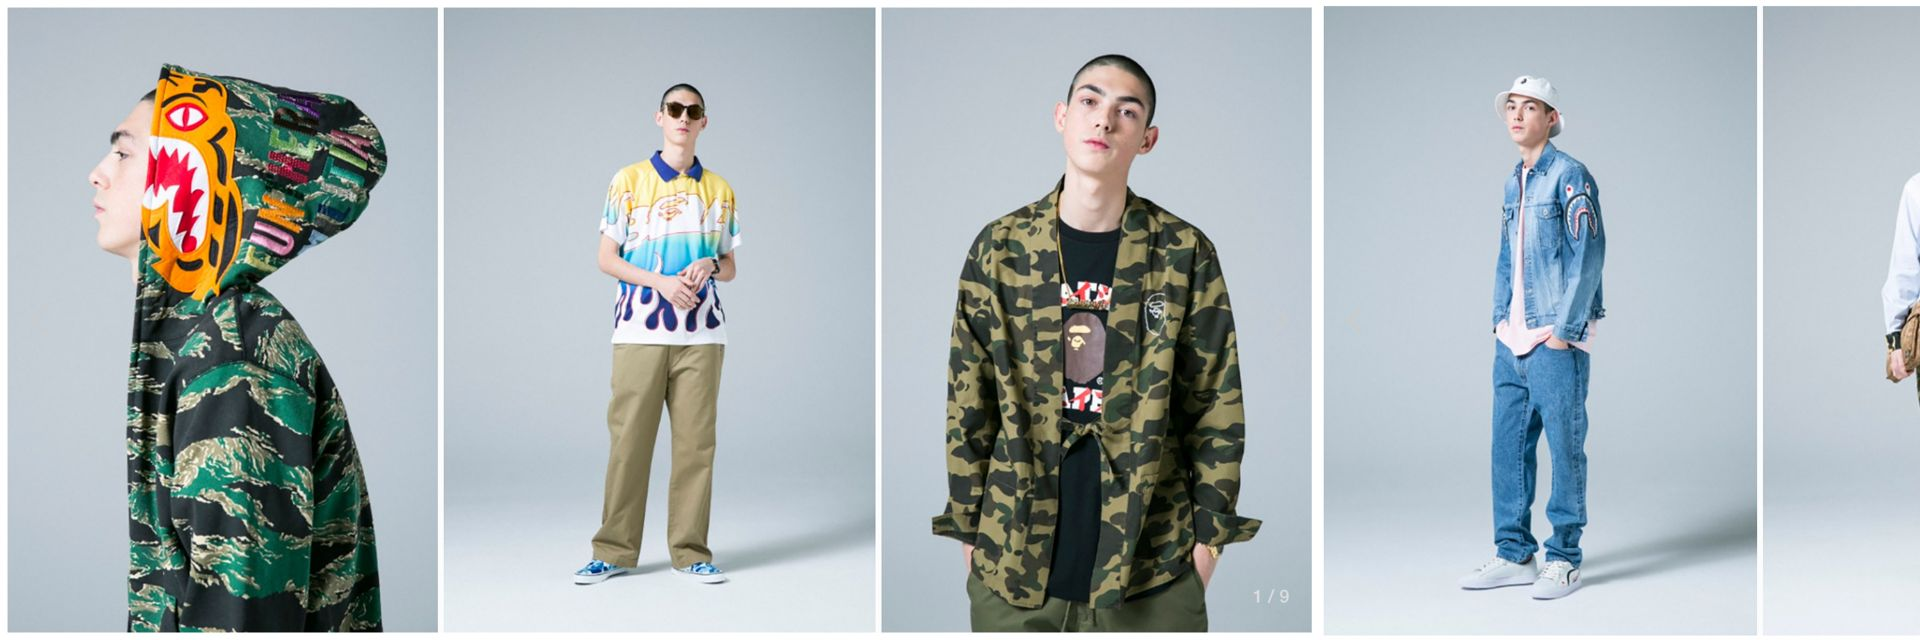 BAPE Unveils A Jam Packed